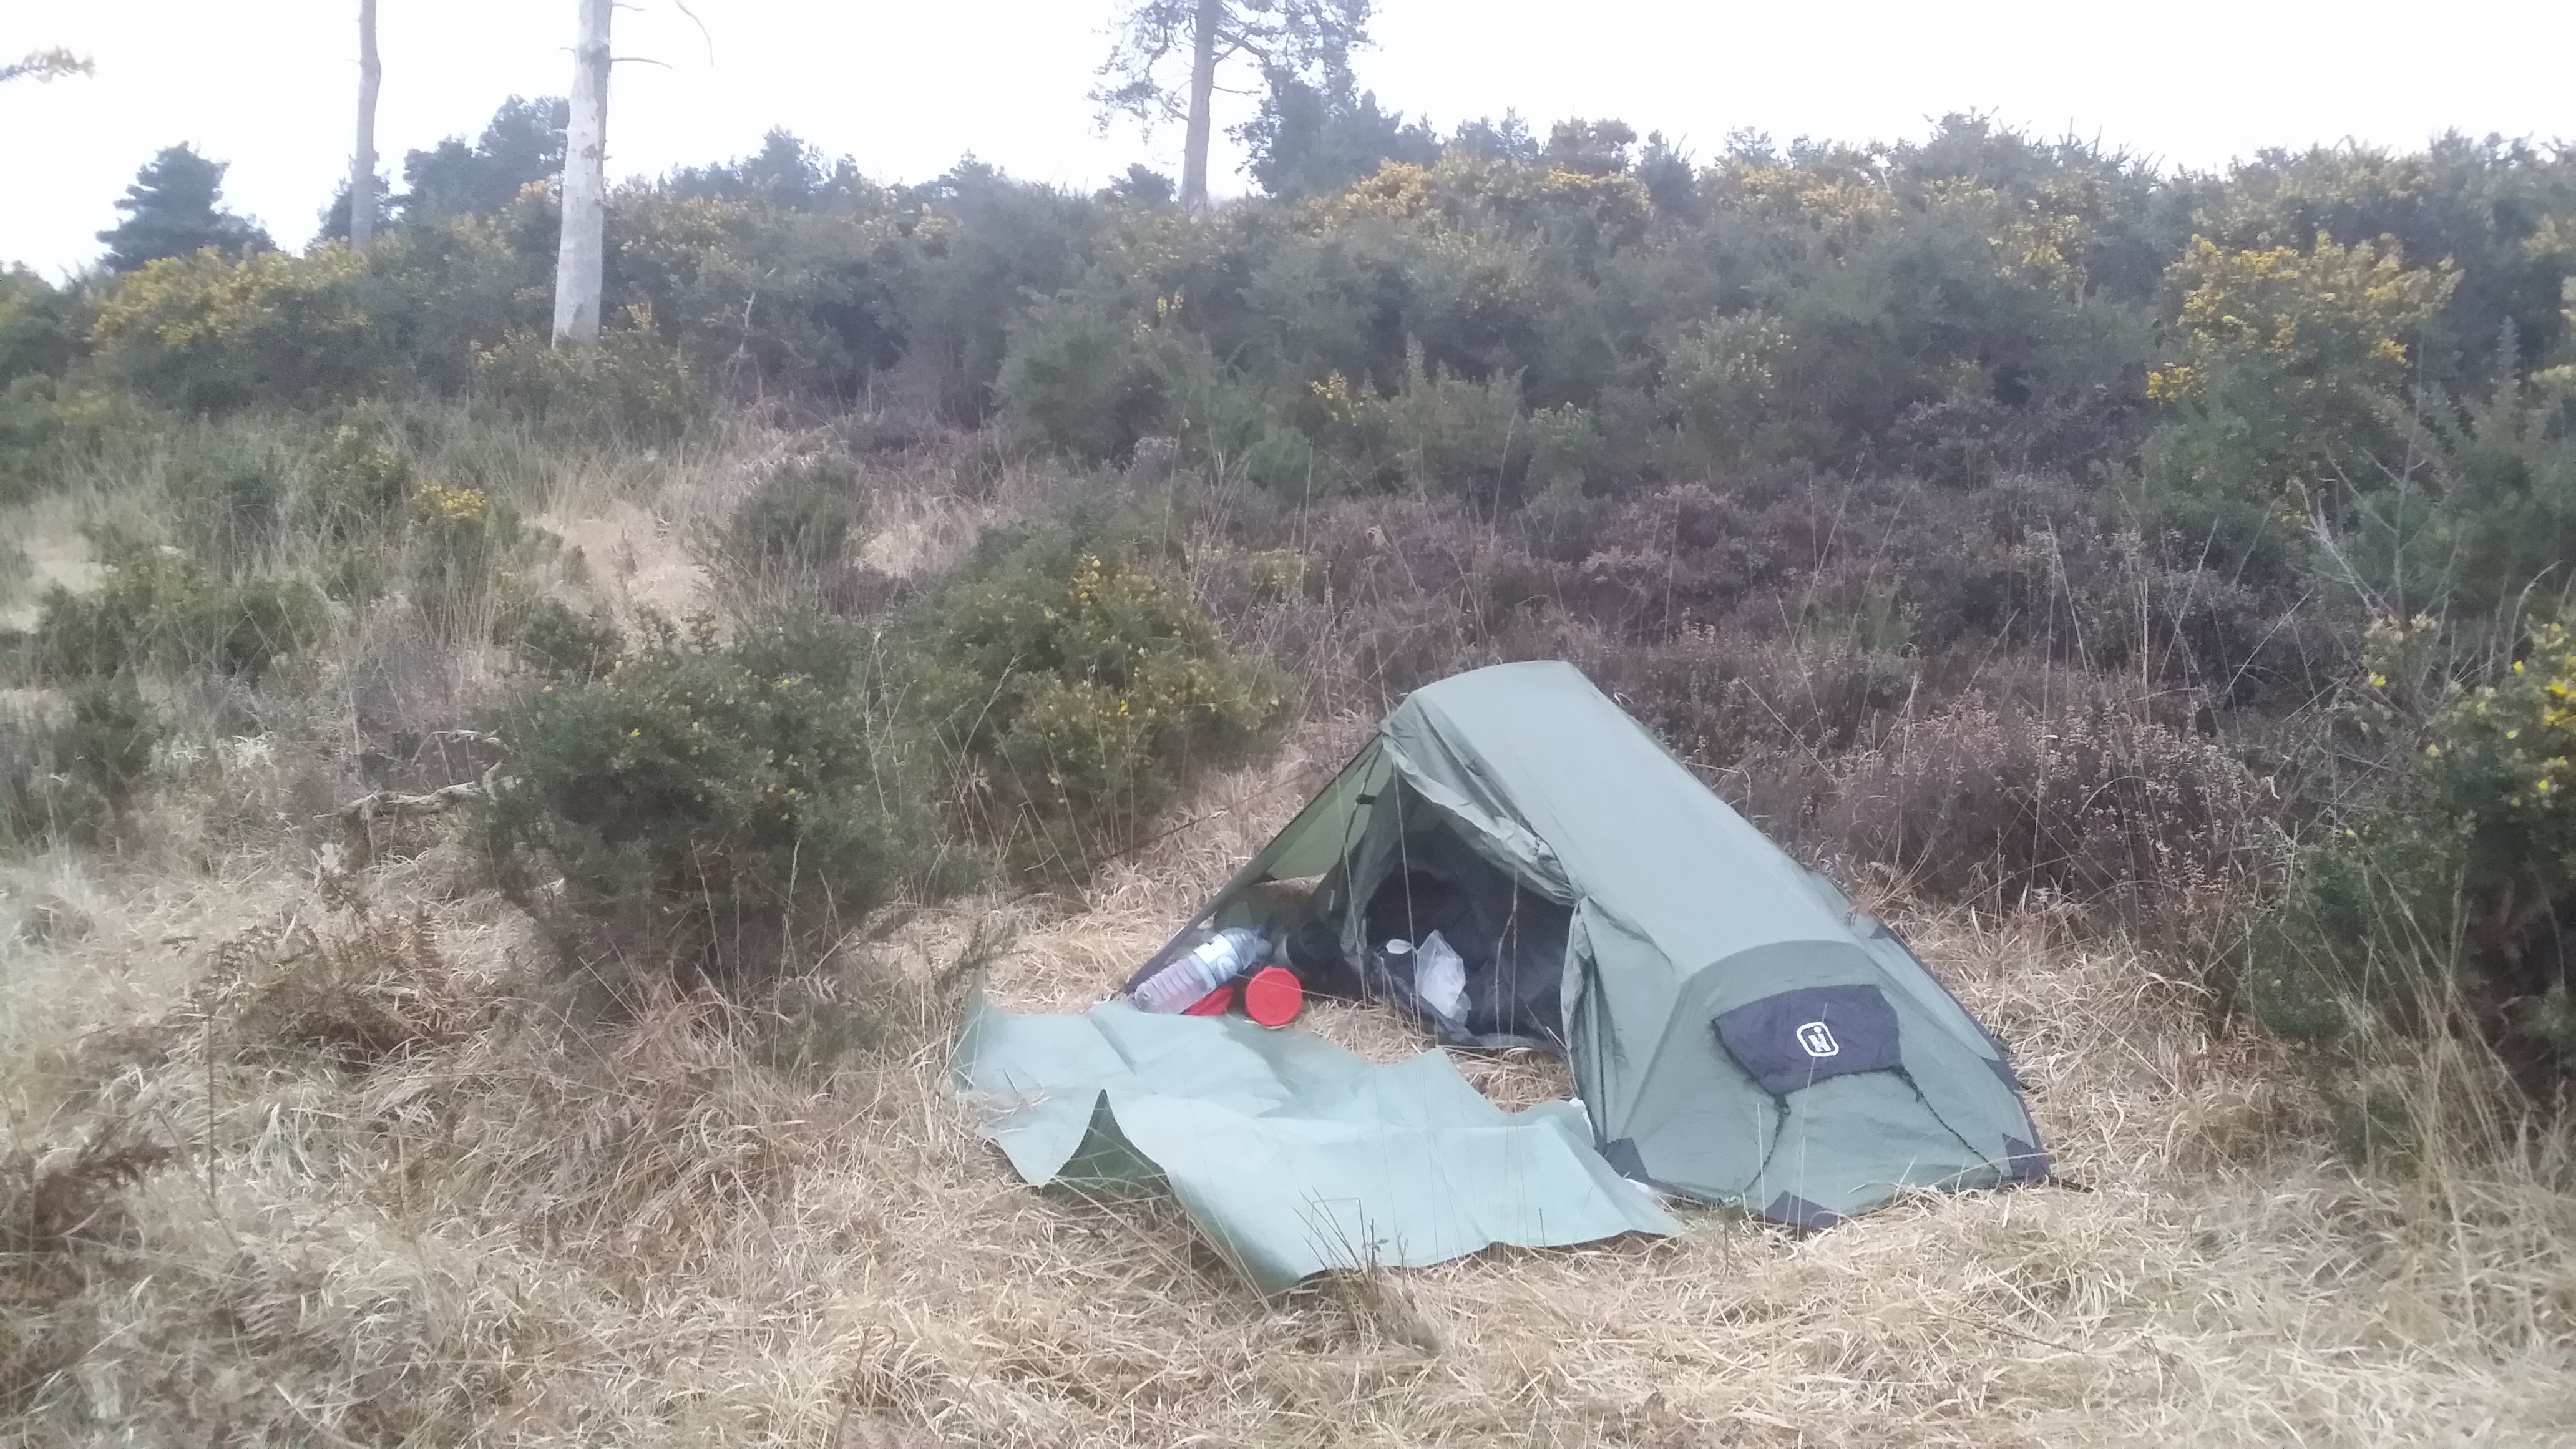 Camp in Ashdown Forest #Wealdway #sh